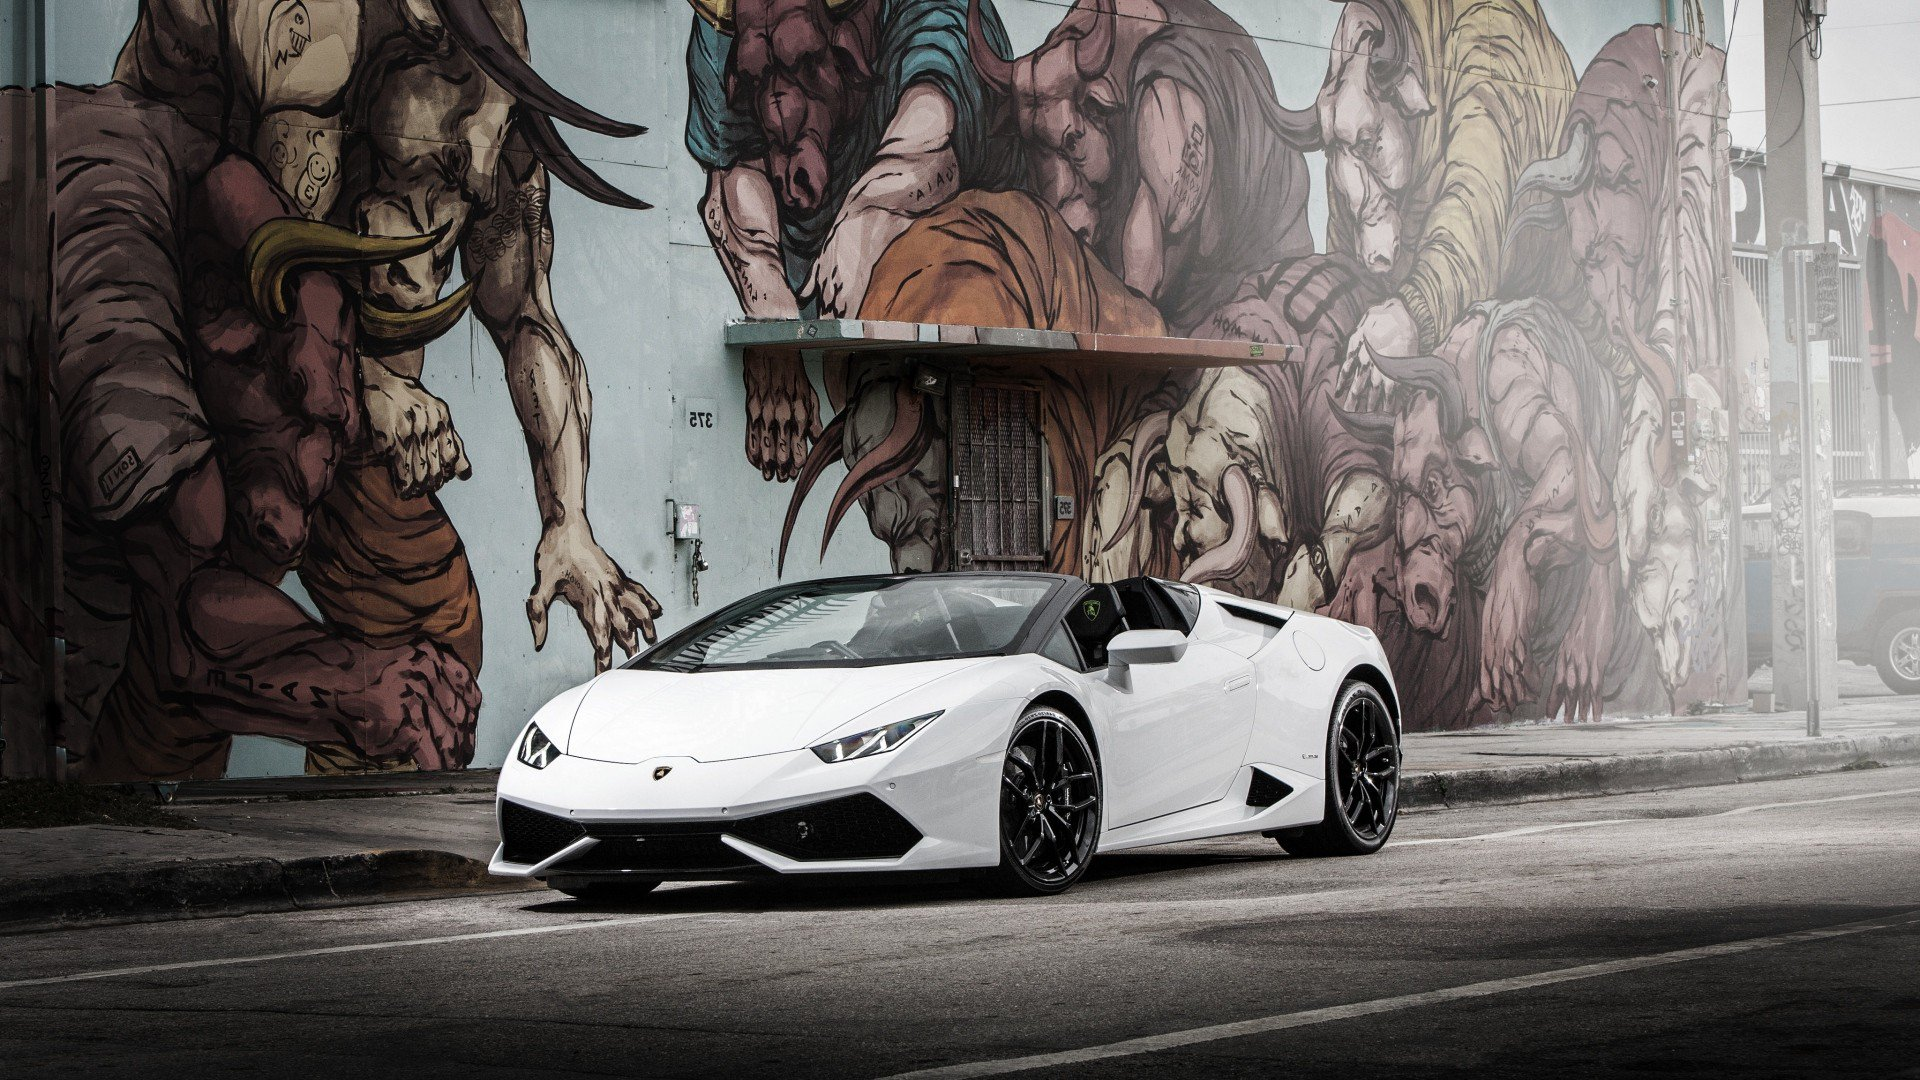 720x1280 Hd Car Wallpapers For Mobile Lamborghini Huracan White Hd Cars 4k Wallpapers Images